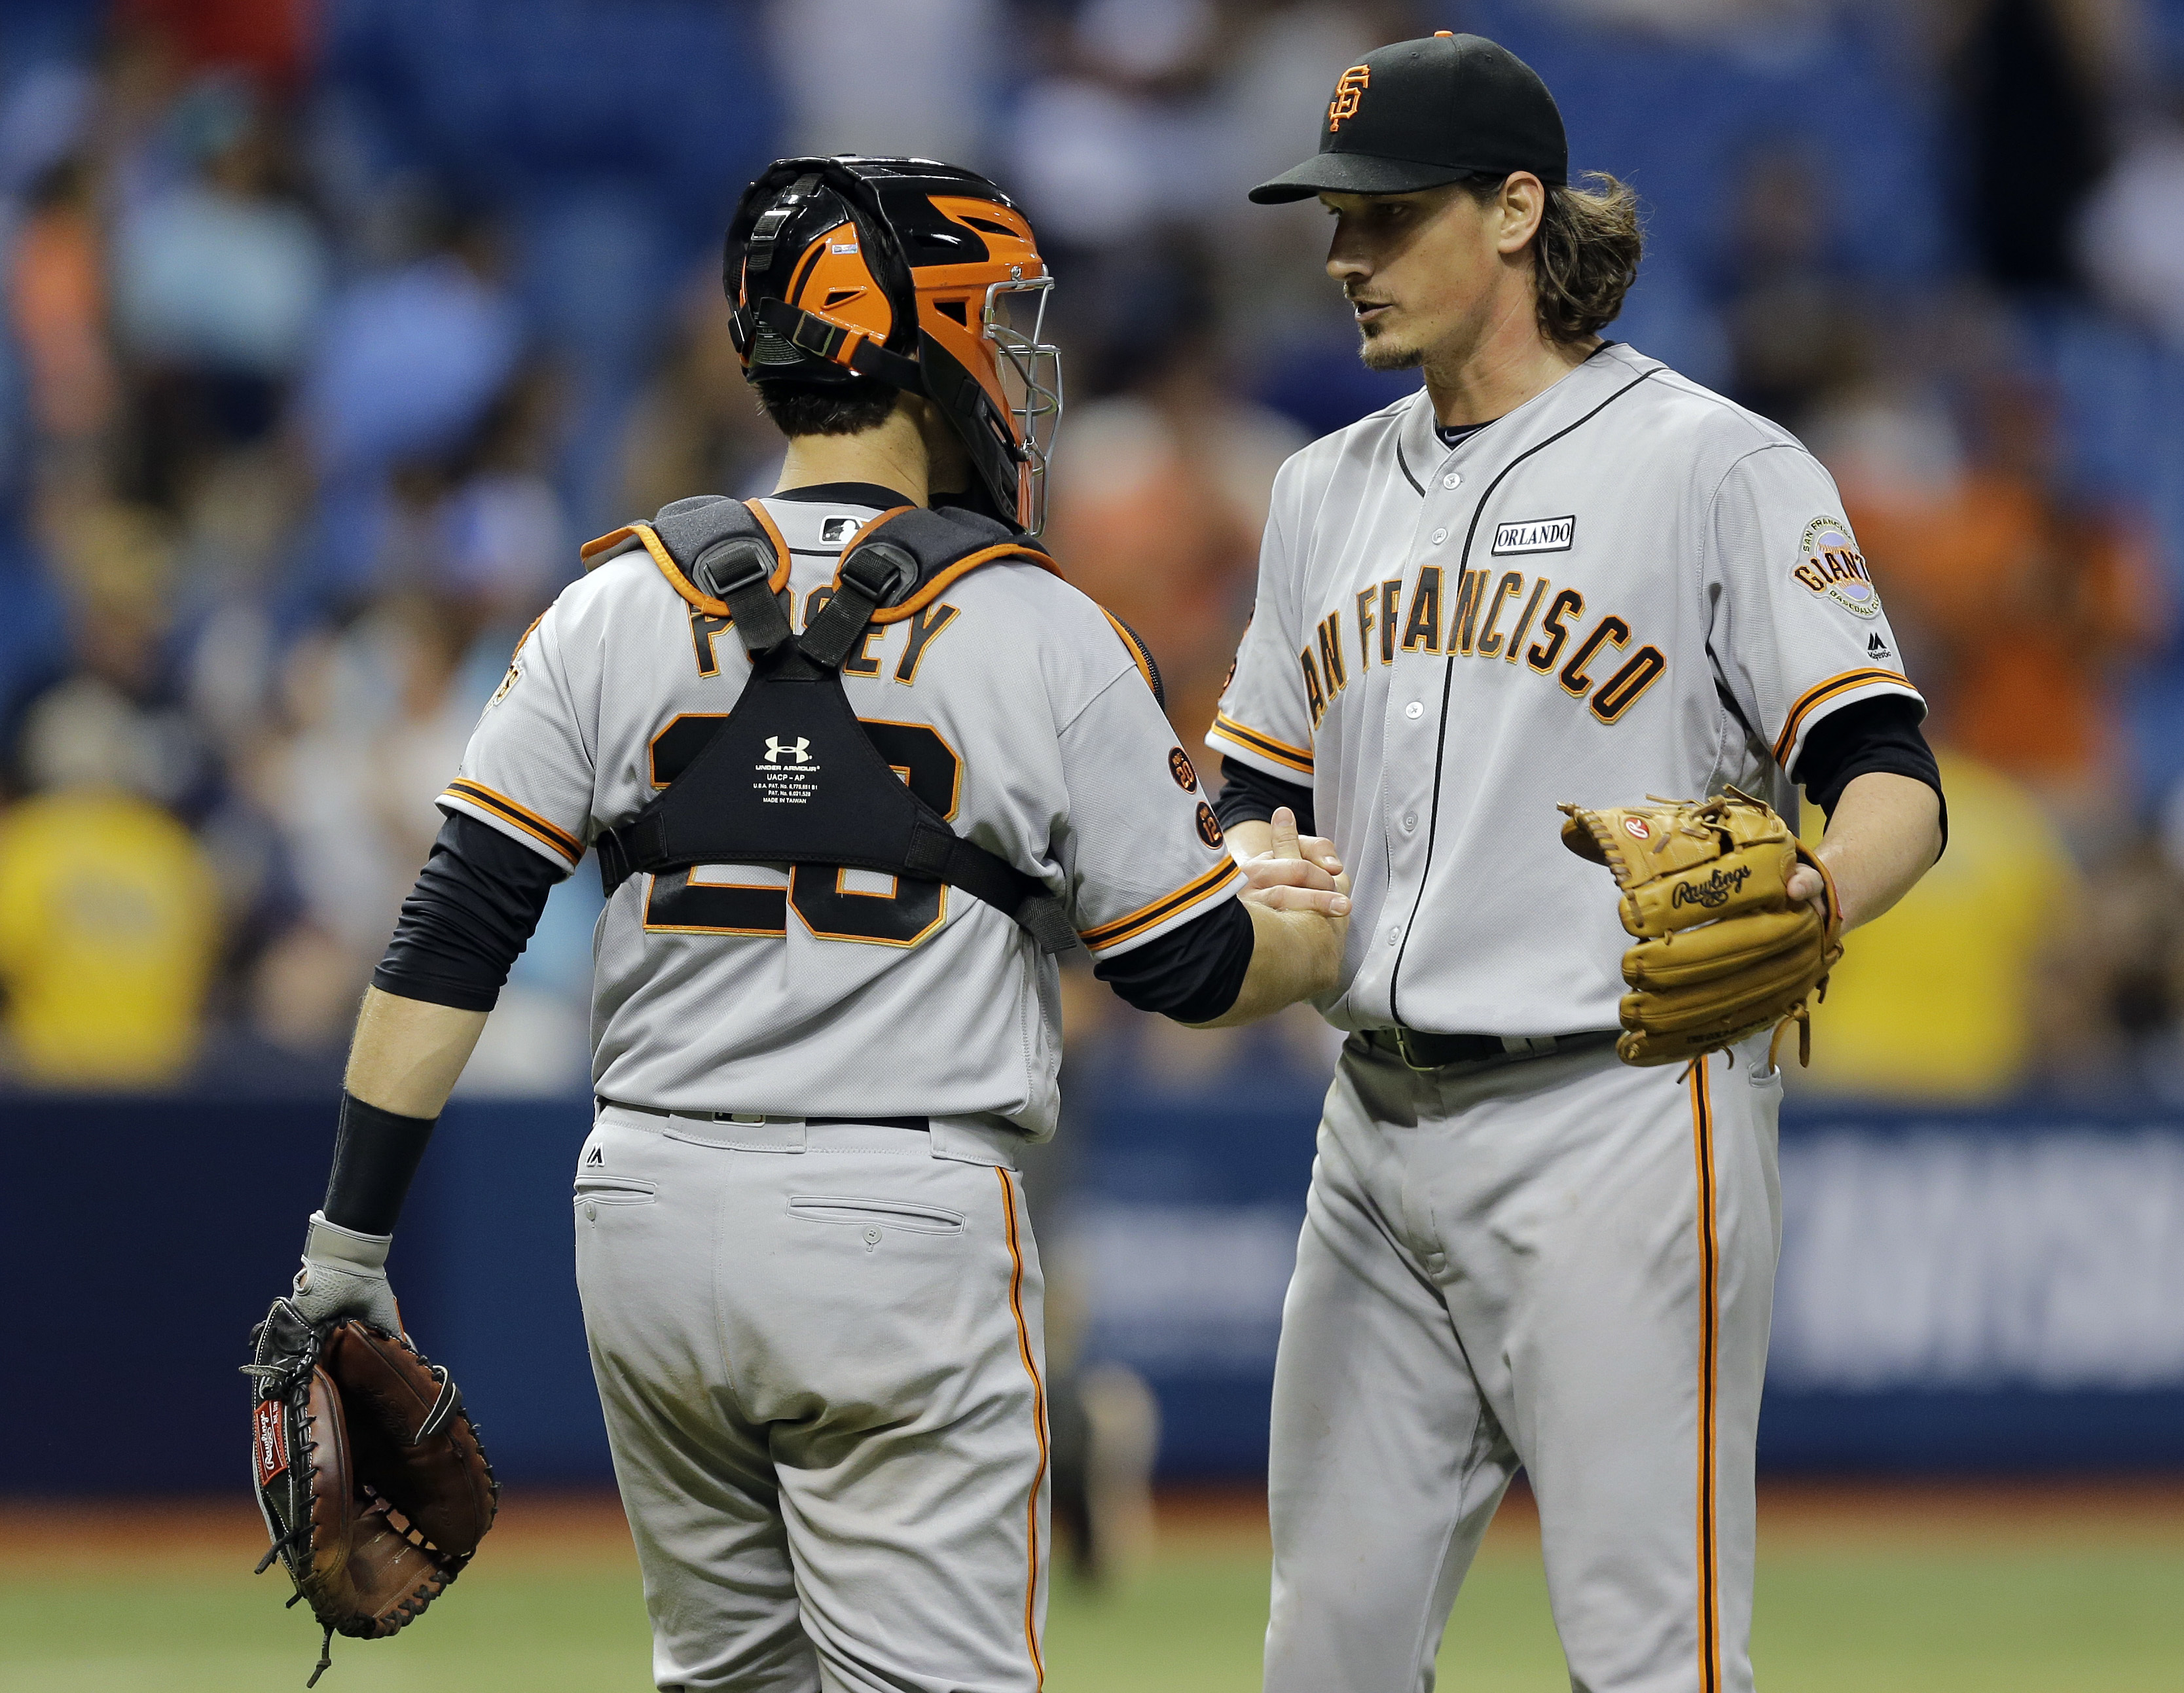 San Francisco Giants starting pitcher Jeff Samardzija, right, shakes hands with catcher Buster Posey after closing out the Tampa Bay Rays during the ninth inning of a baseball game Friday, June 17, 2016, in St. Petersburg, Fla. (AP Photo/Chris O'Meara)